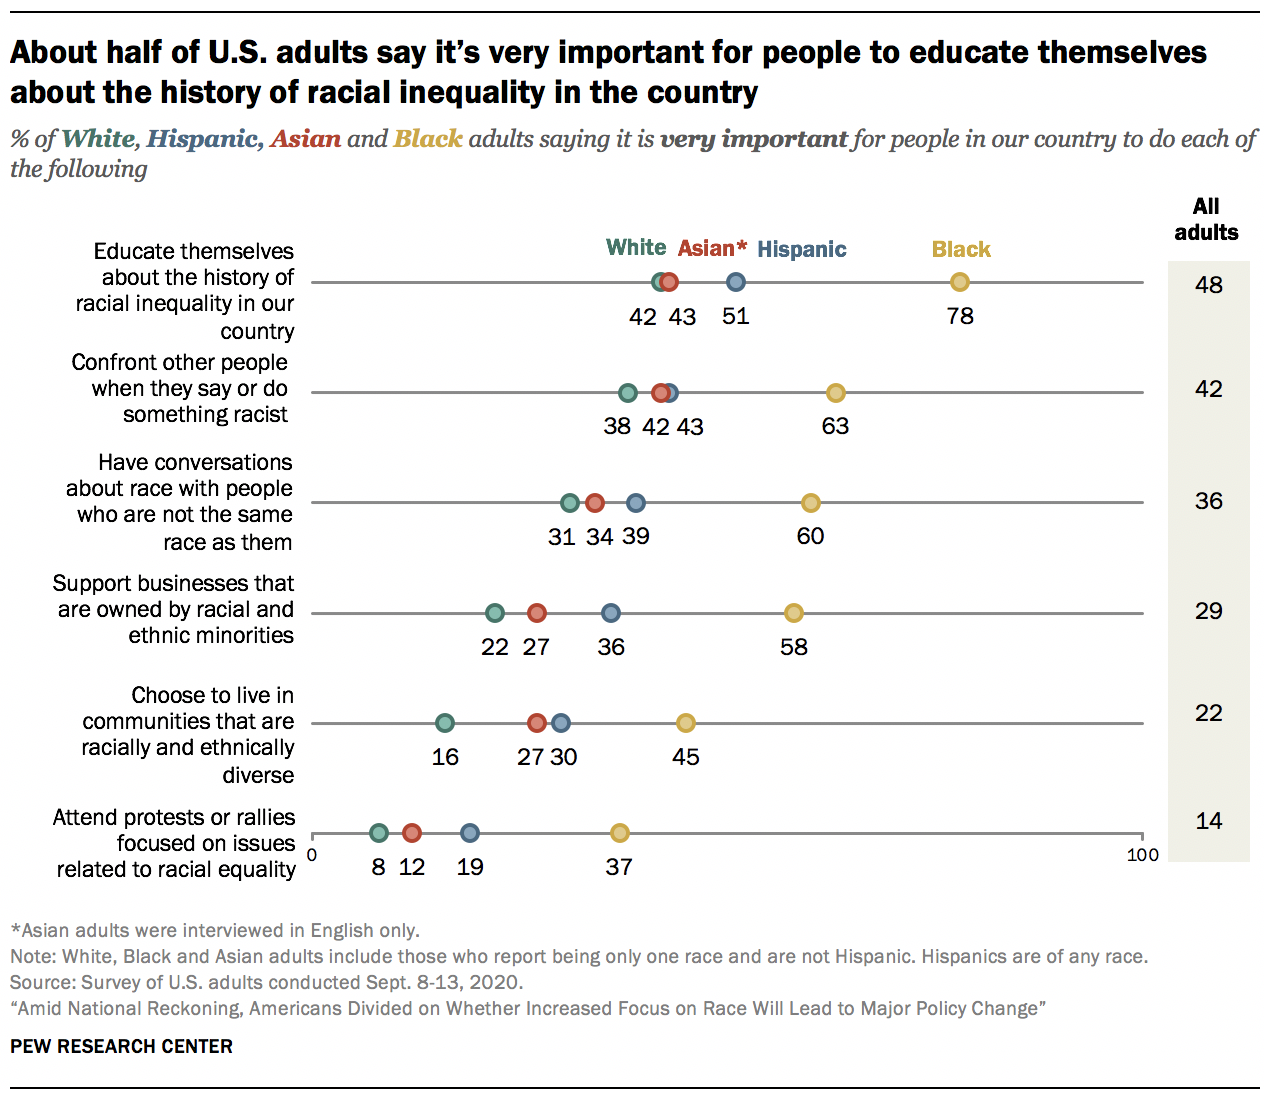 About half of U.S. adults say it's very important for people to educate themselves about the history of racial inequality in the country